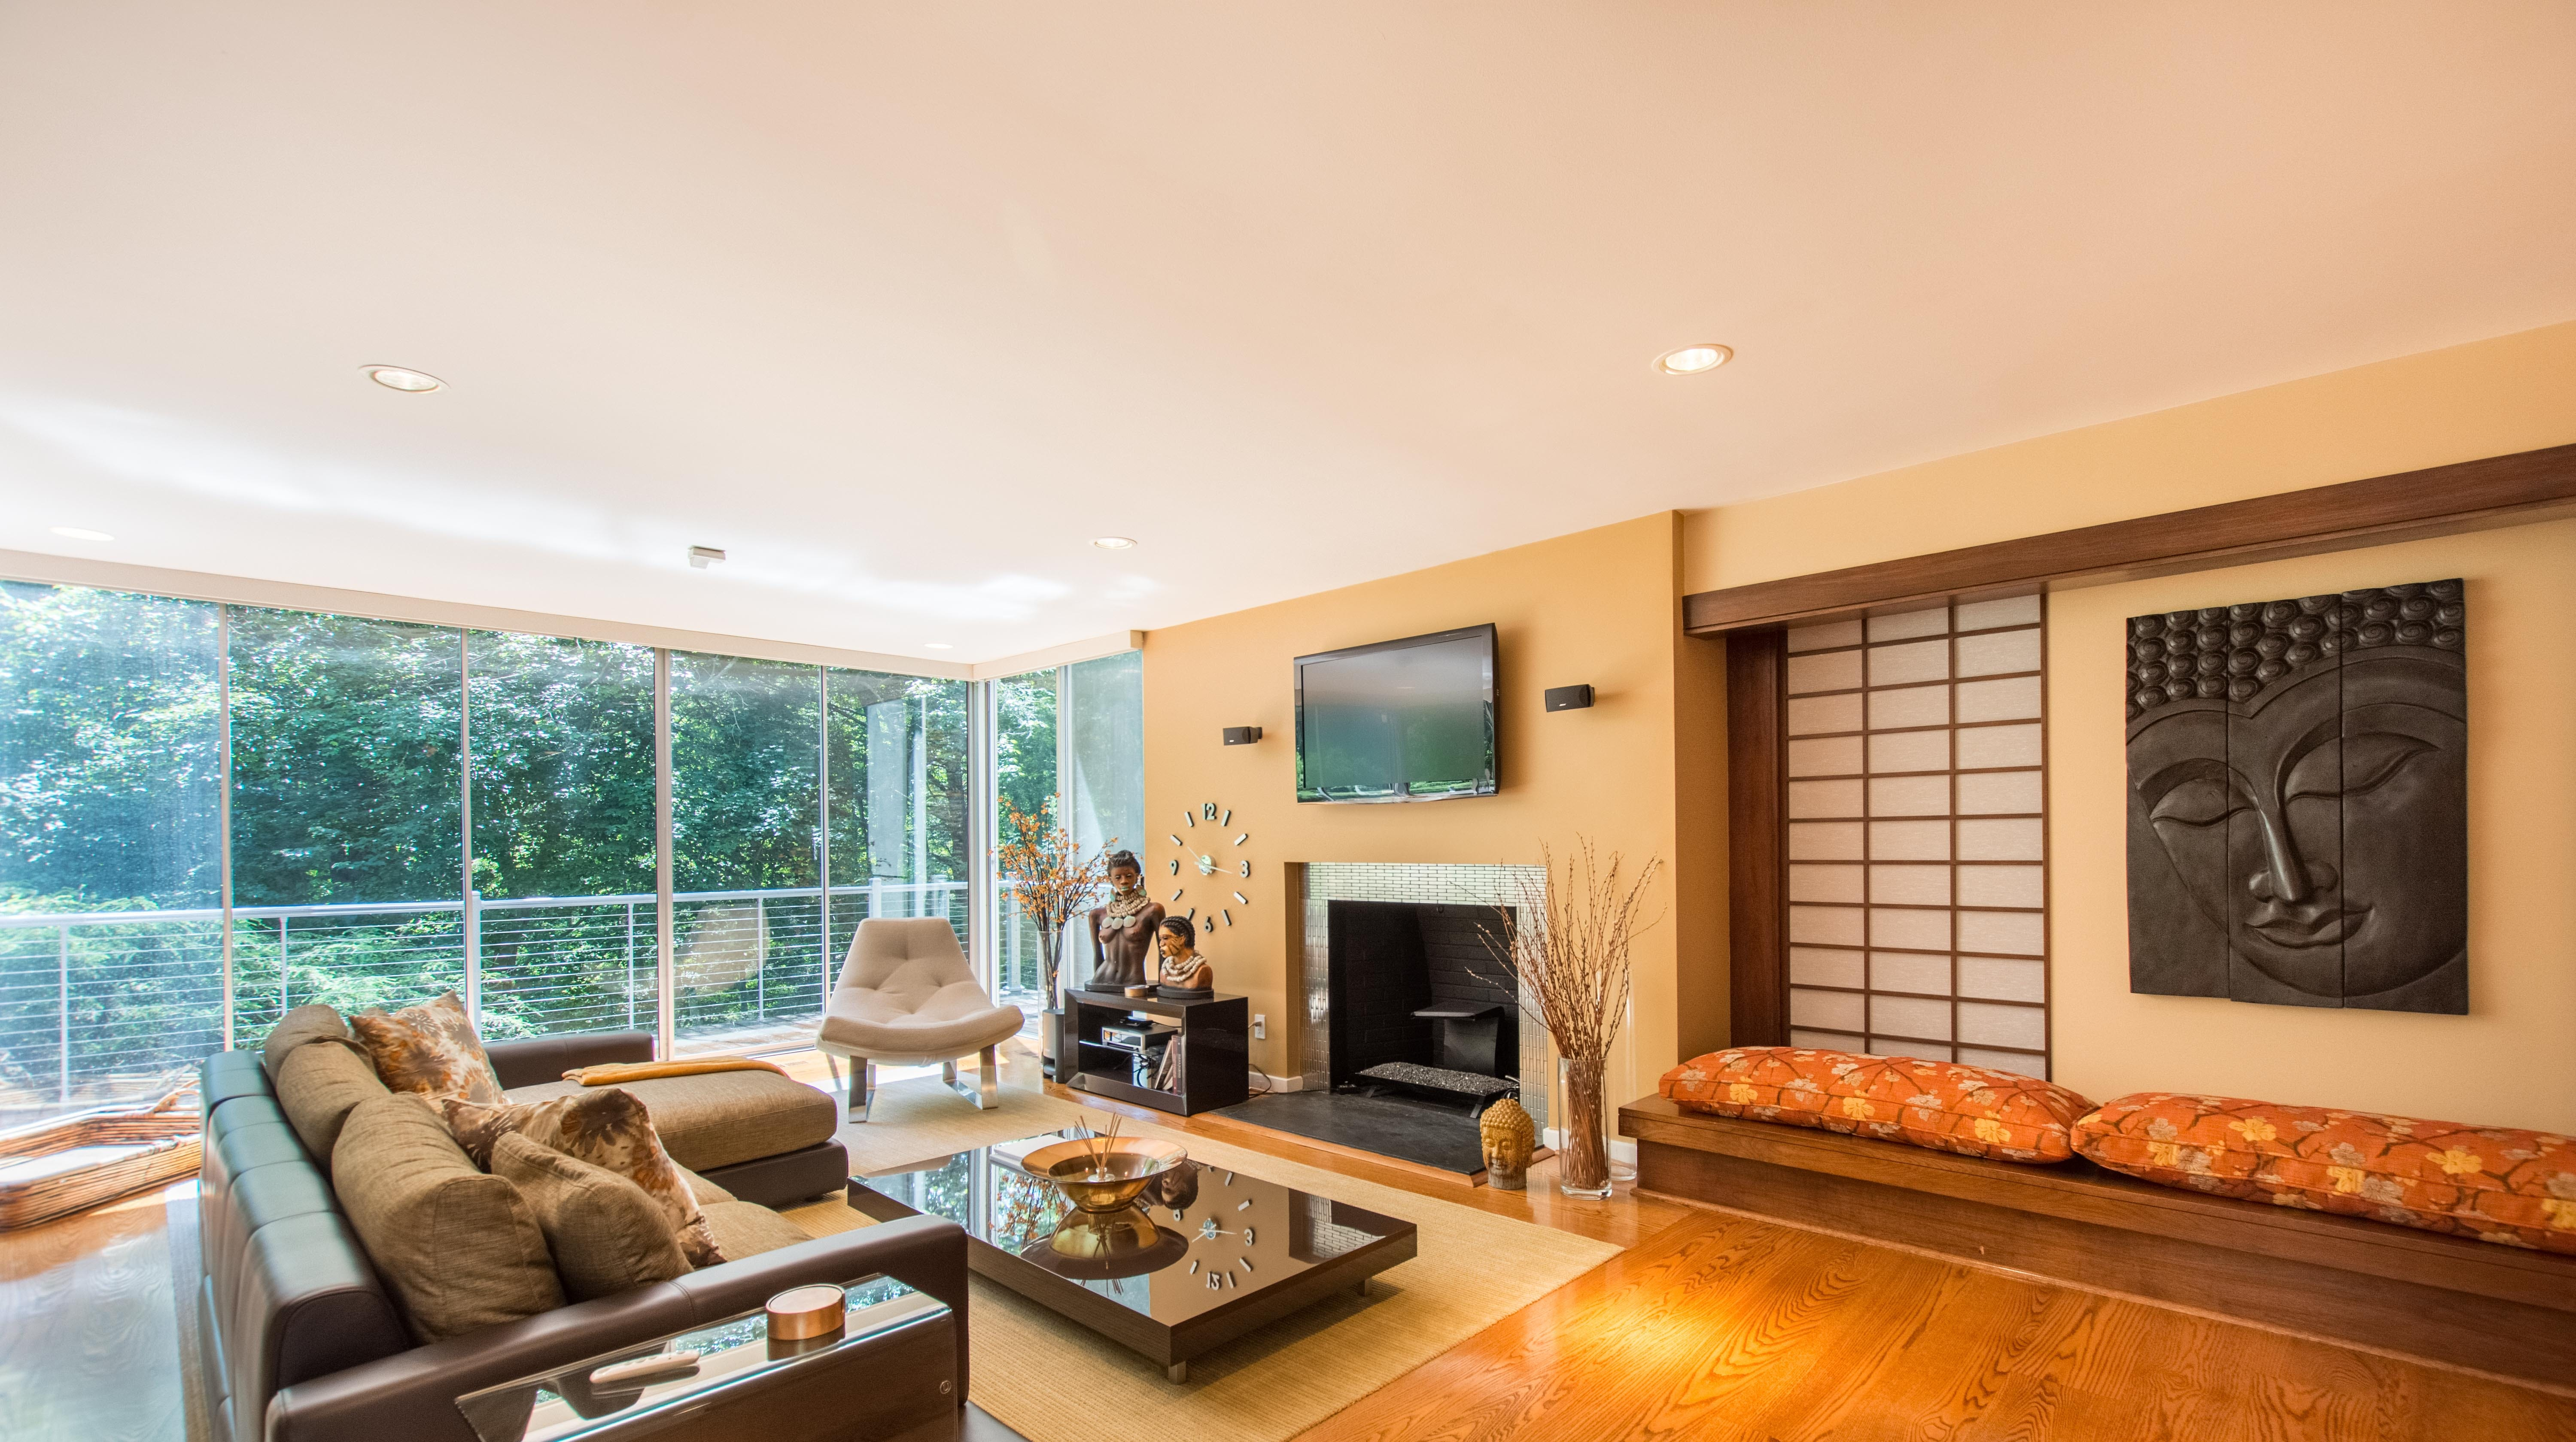 Tour this three-level, Frank Lloyd Wright style home sitting on 3.39 acres in Hockessin.